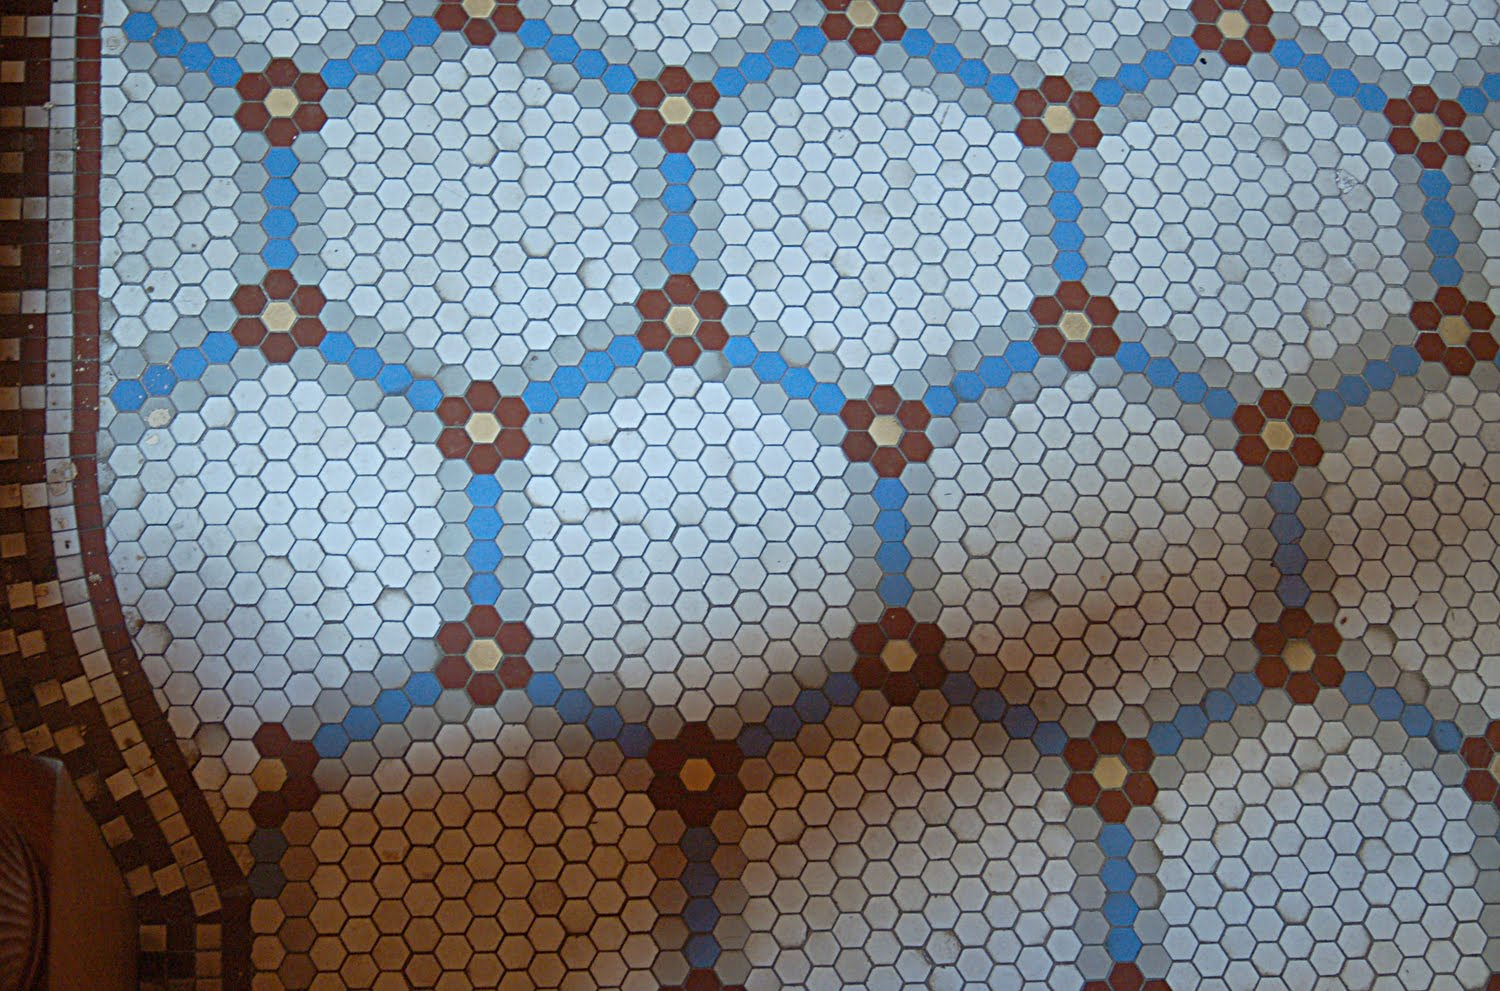 elegant-flooring-design-ideas-for-kitchen-and-bathroom-areas-with-blue-hexagon-floor-tile-pattern-cool-flooring-design-ideas-using-hexagon